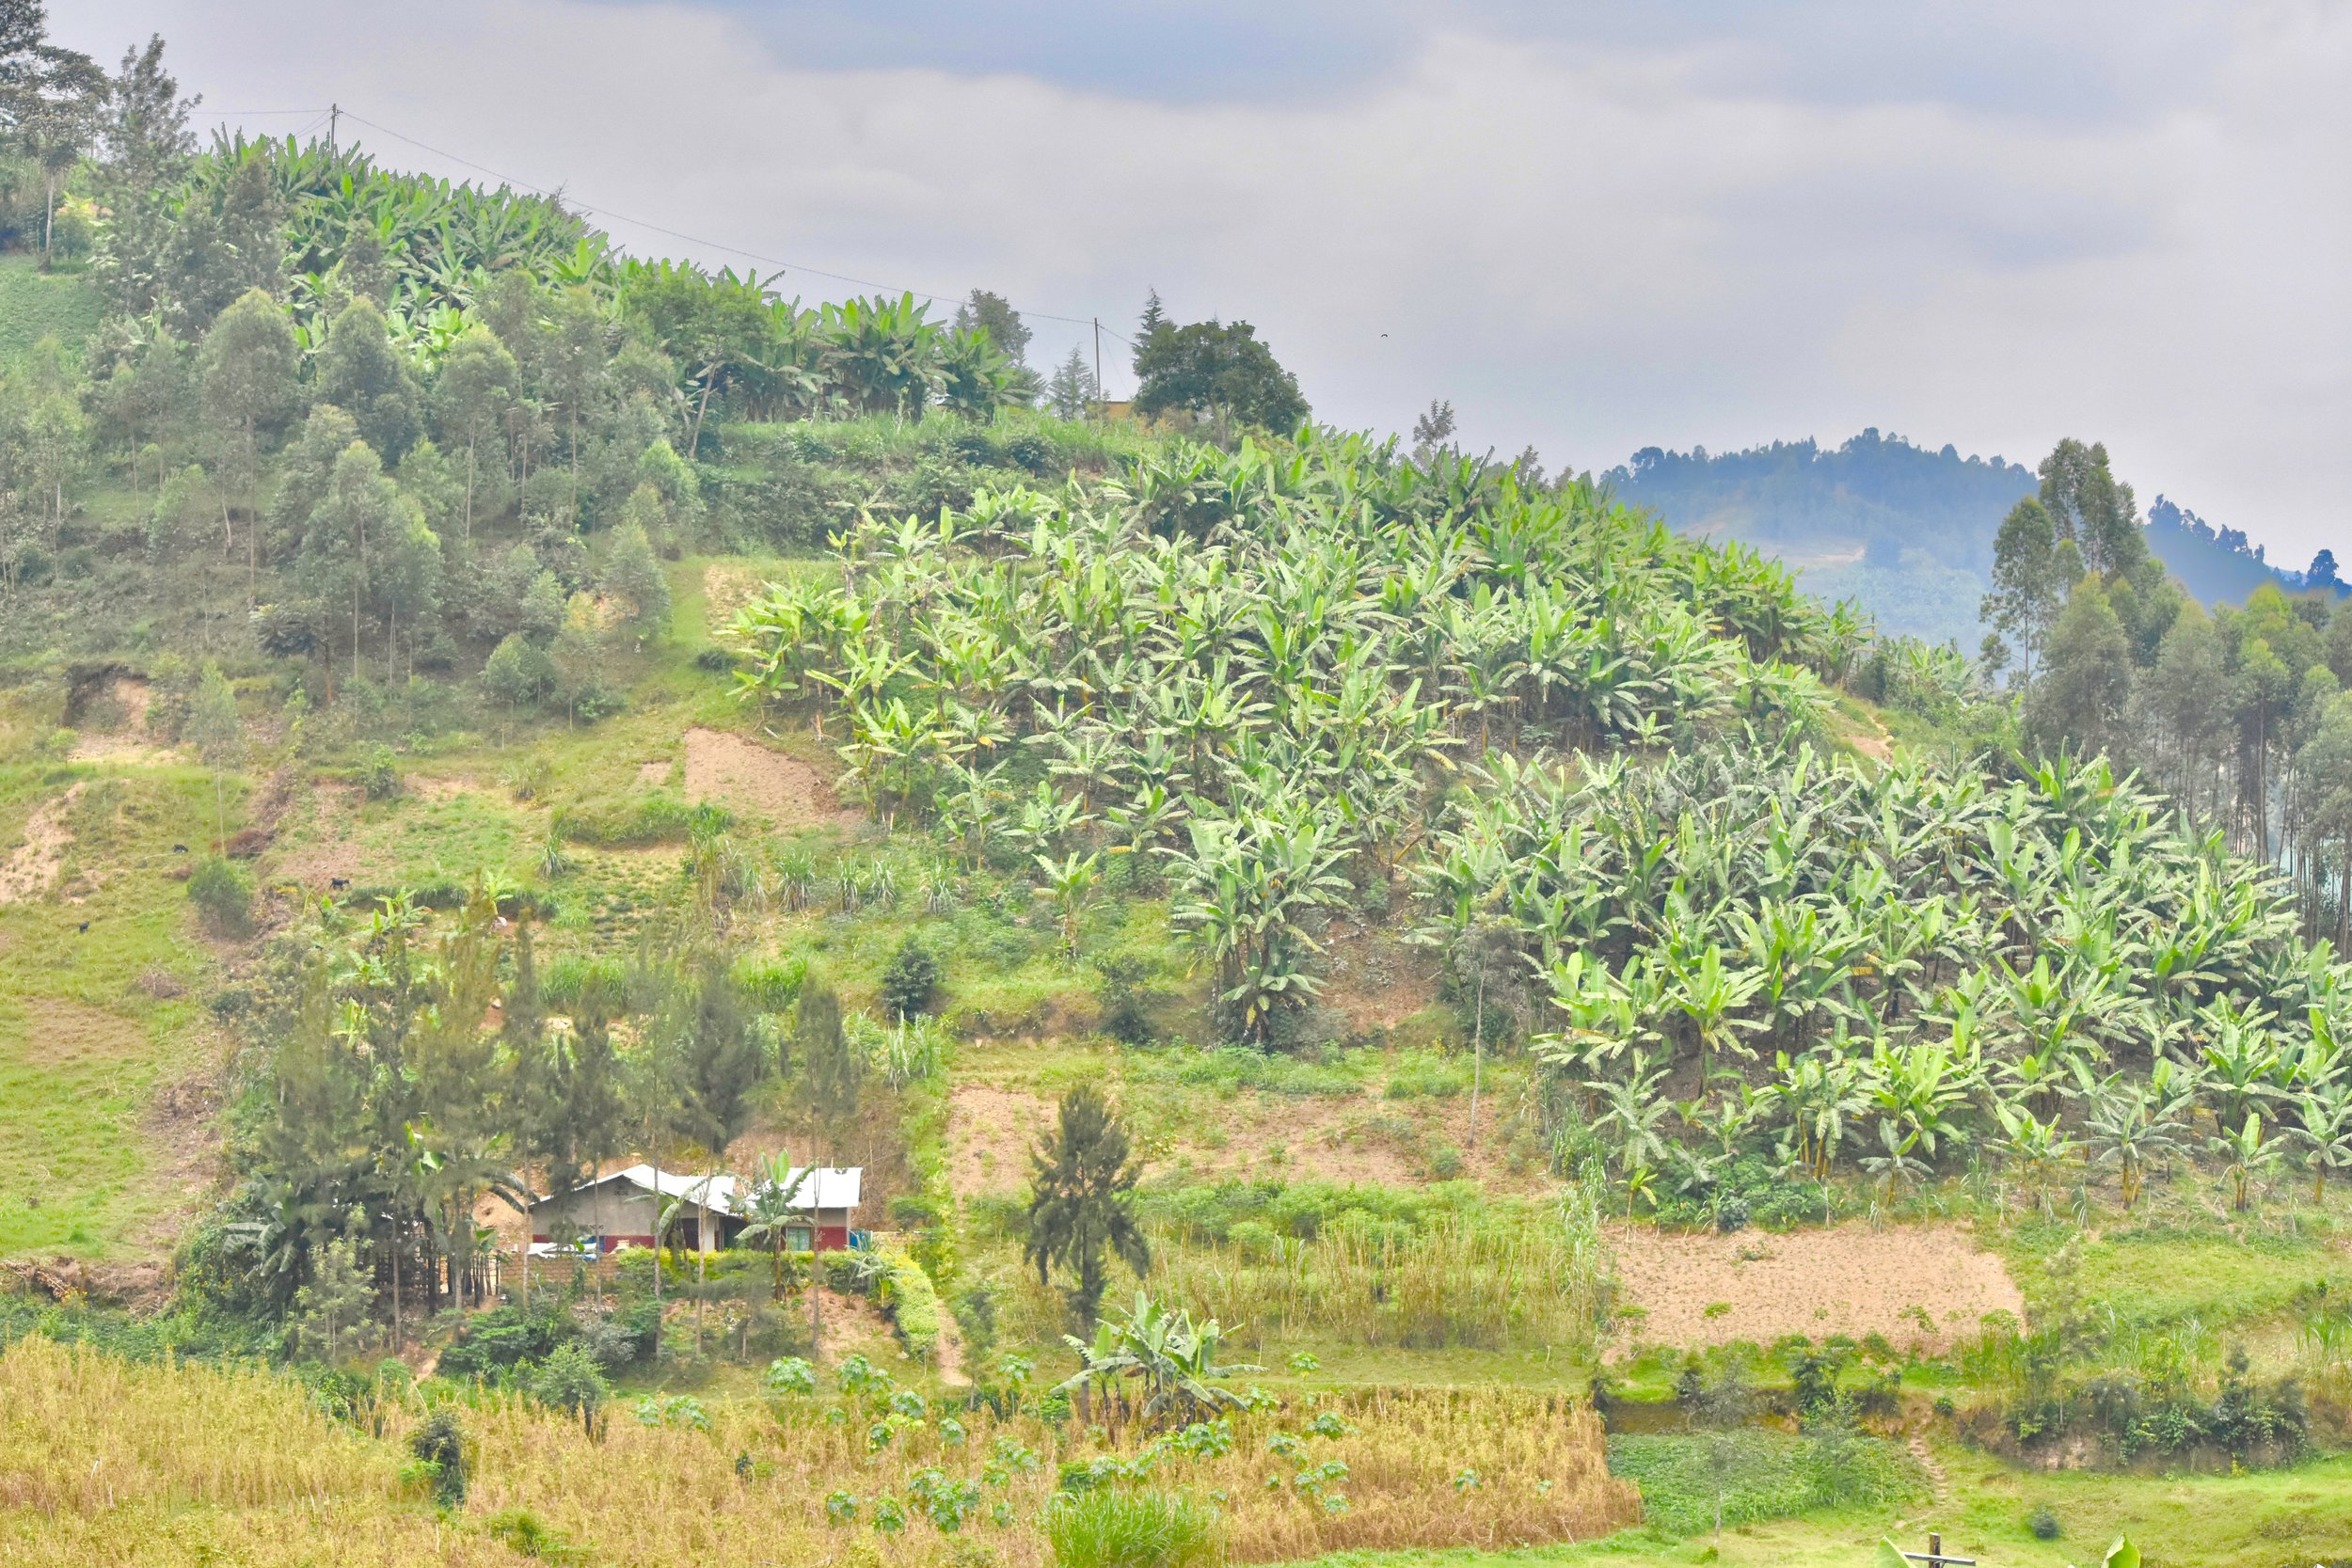 The terraces filled with banana trees